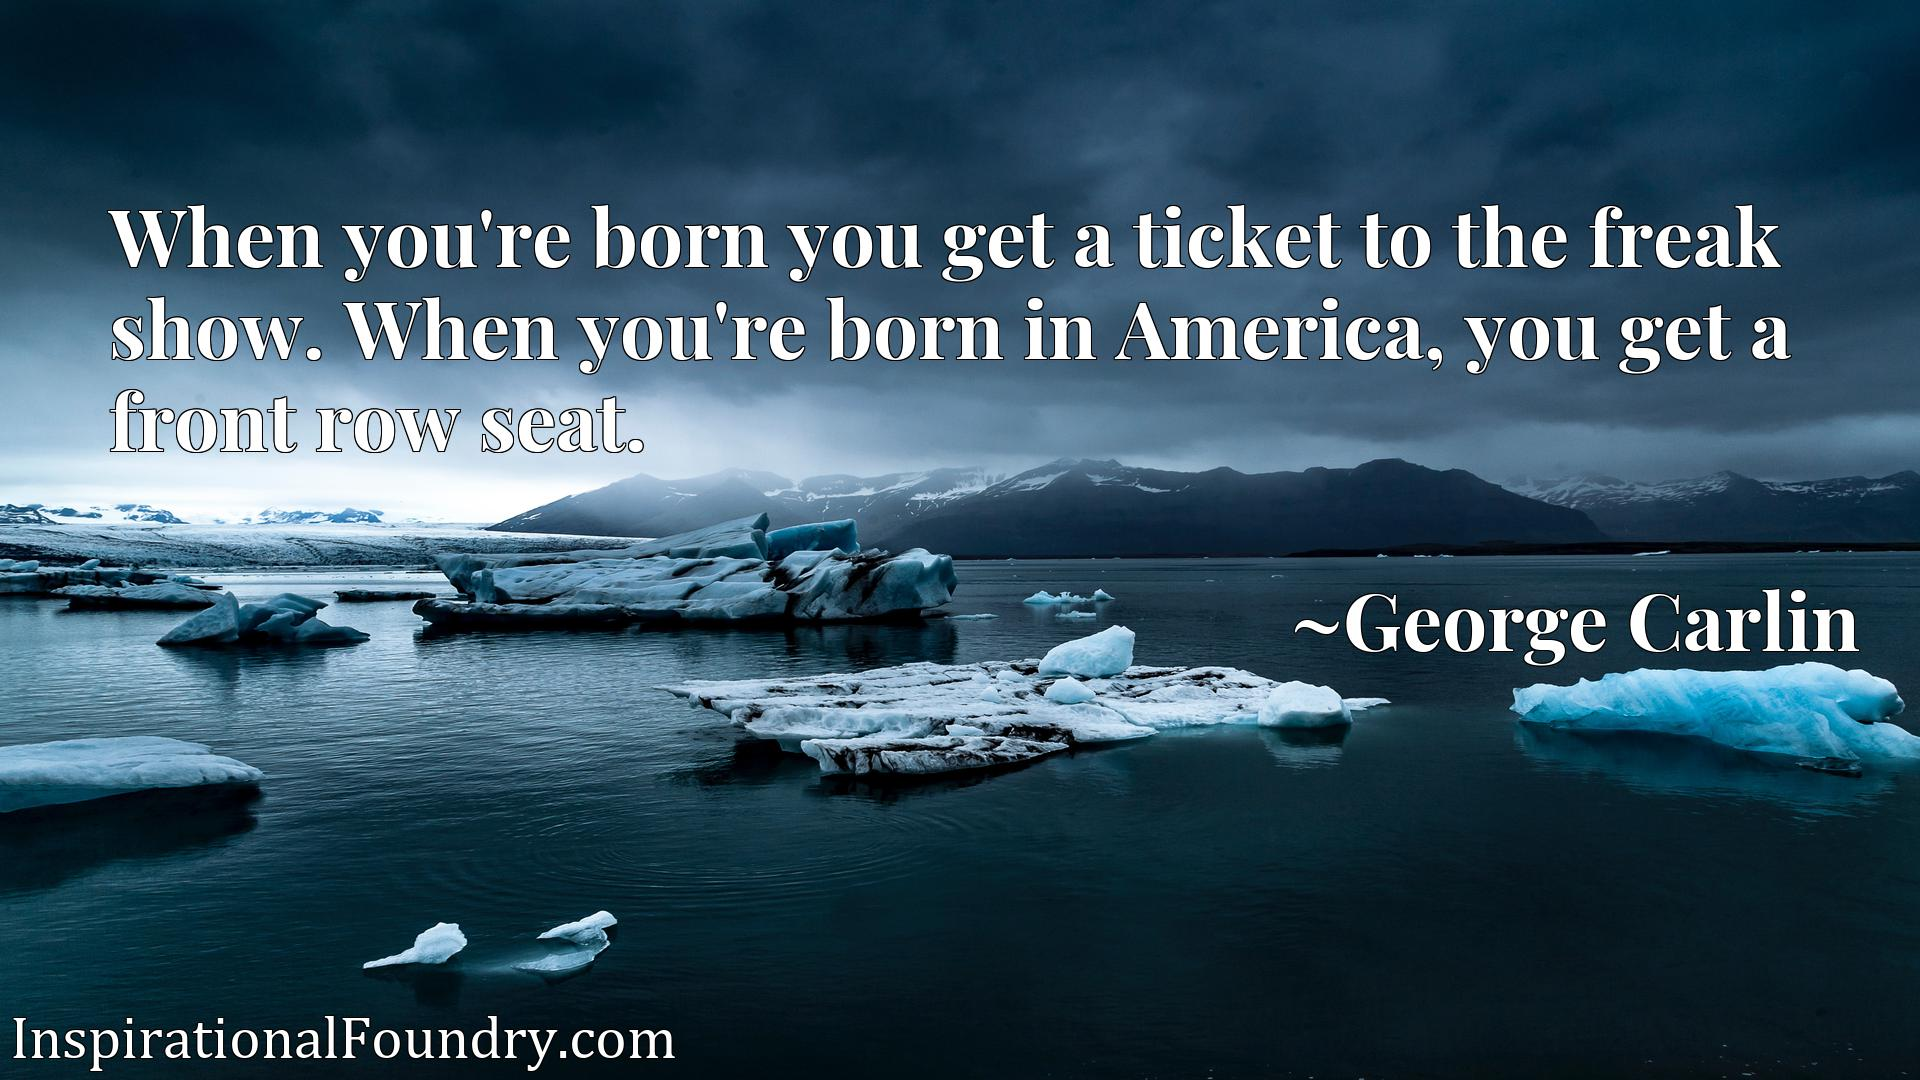 When you're born you get a ticket to the freak show. When you're born in America, you get a front row seat.